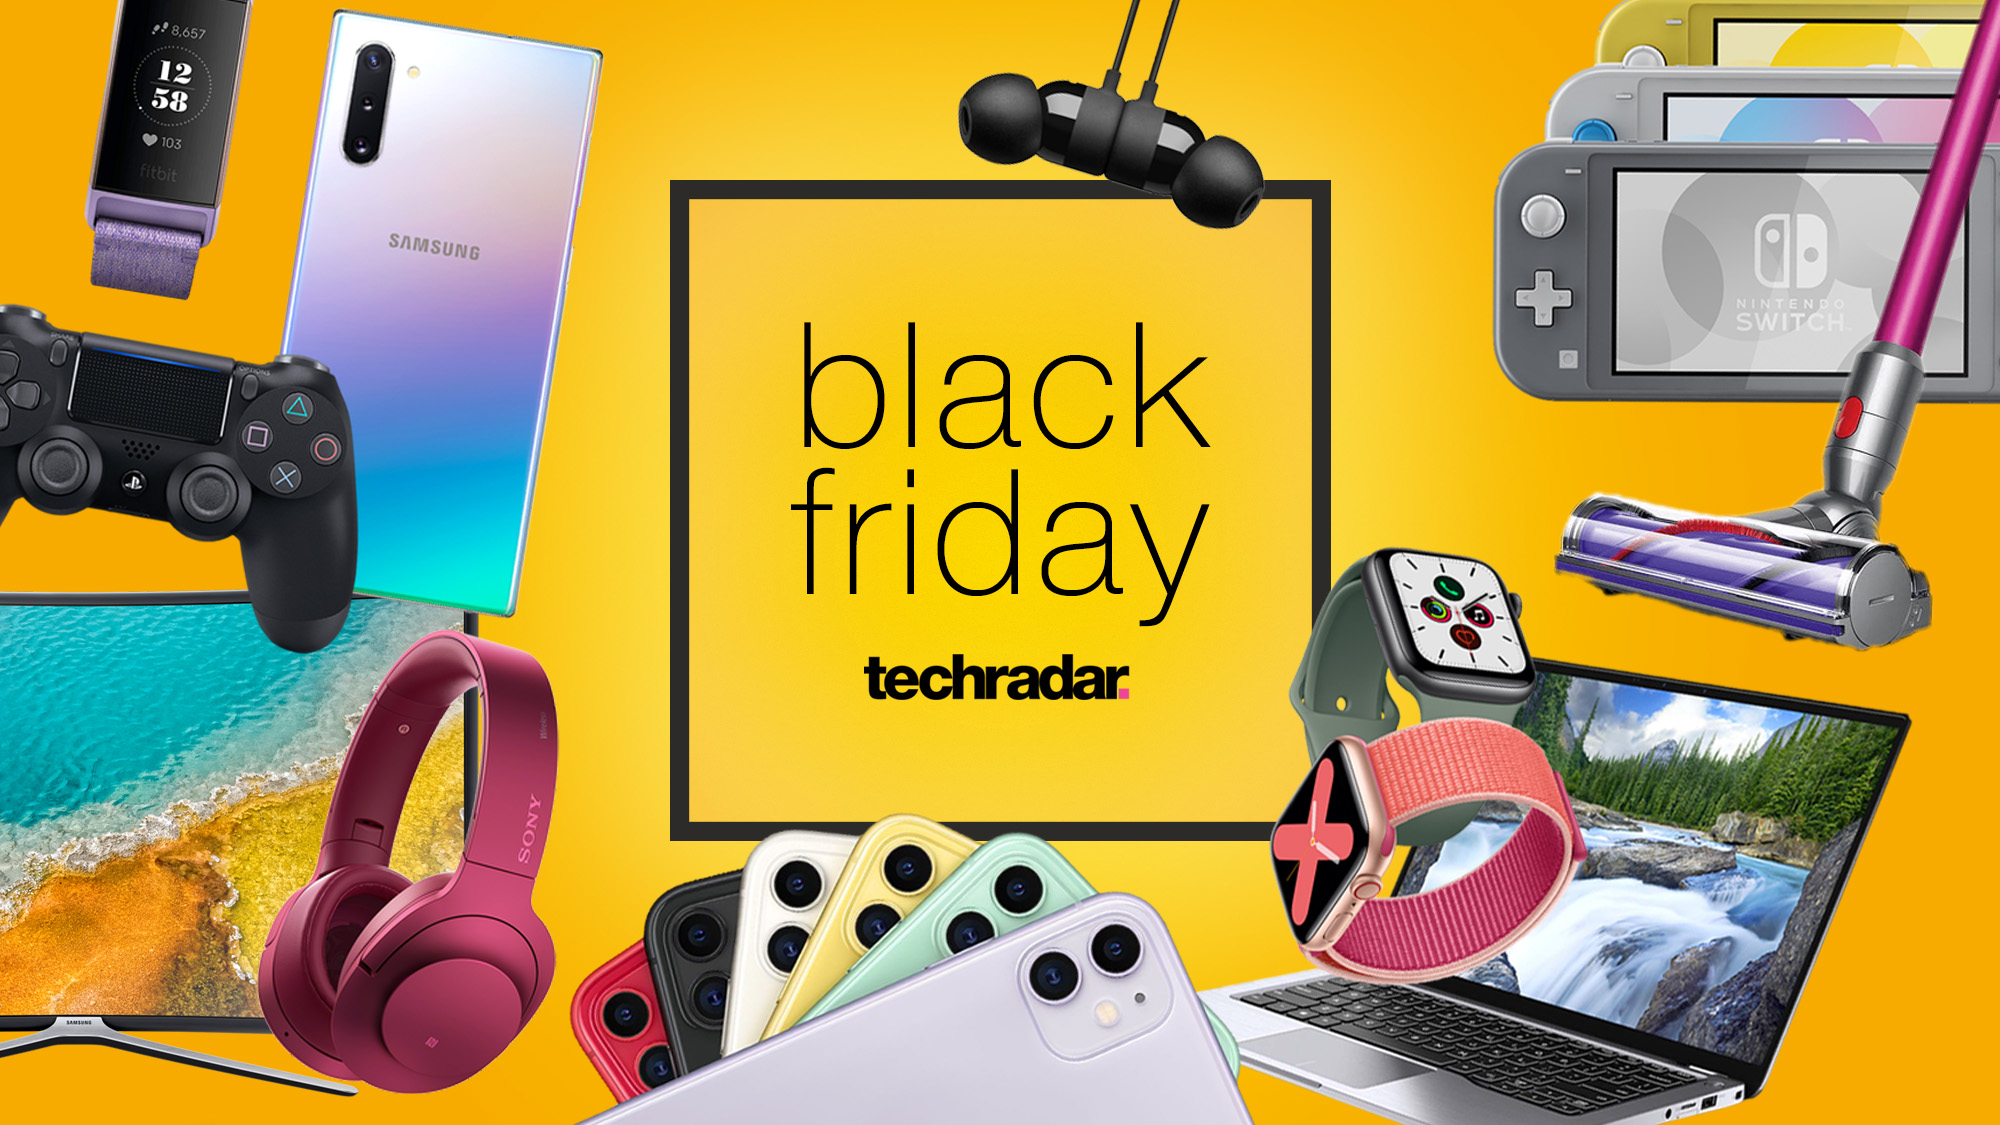 Black Friday 2020: the top deals we're expecting